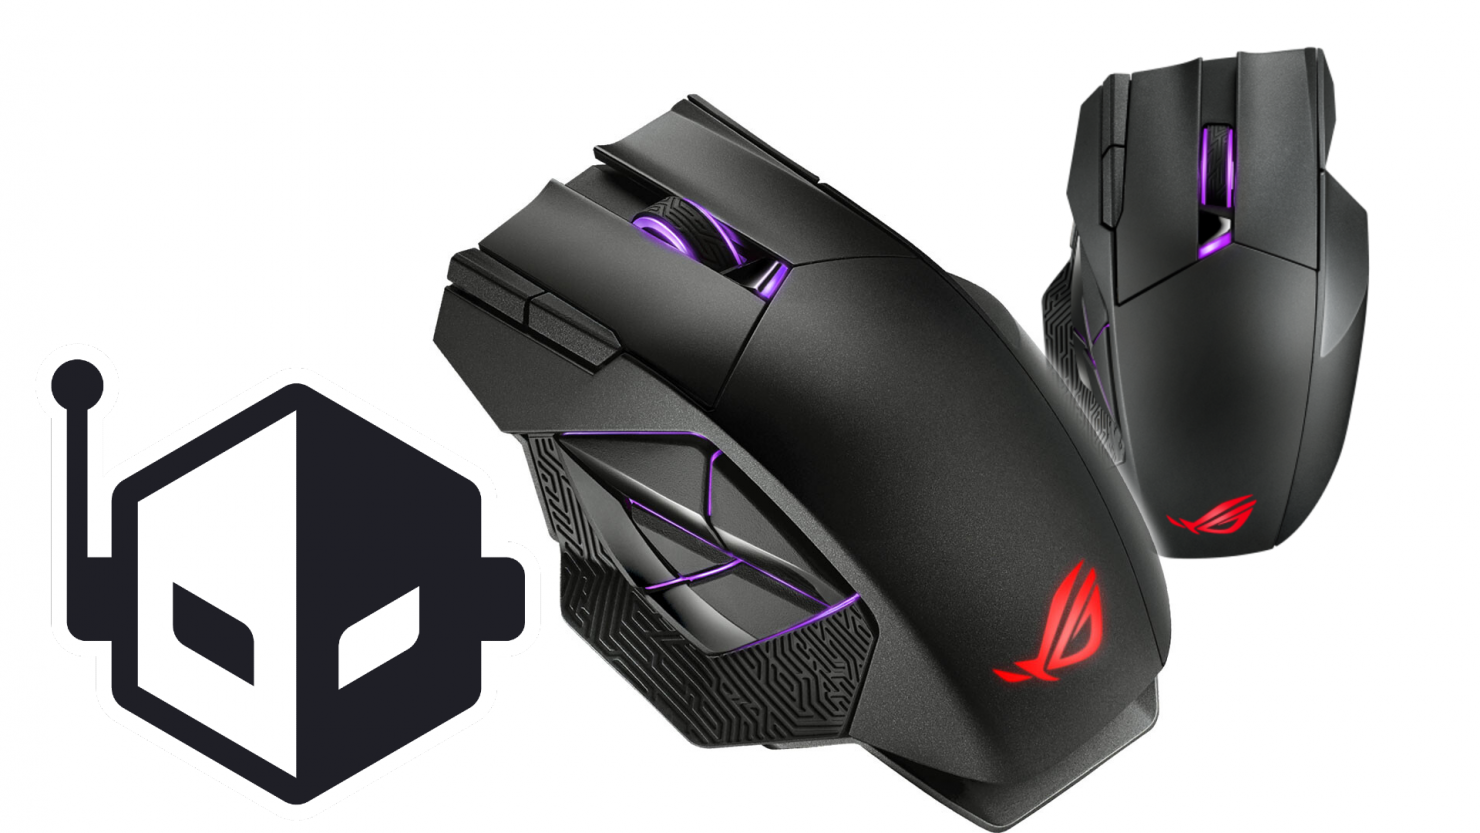 asus-releases-the-rog-spatha-x-wireless-mmo-gaming-mouse!